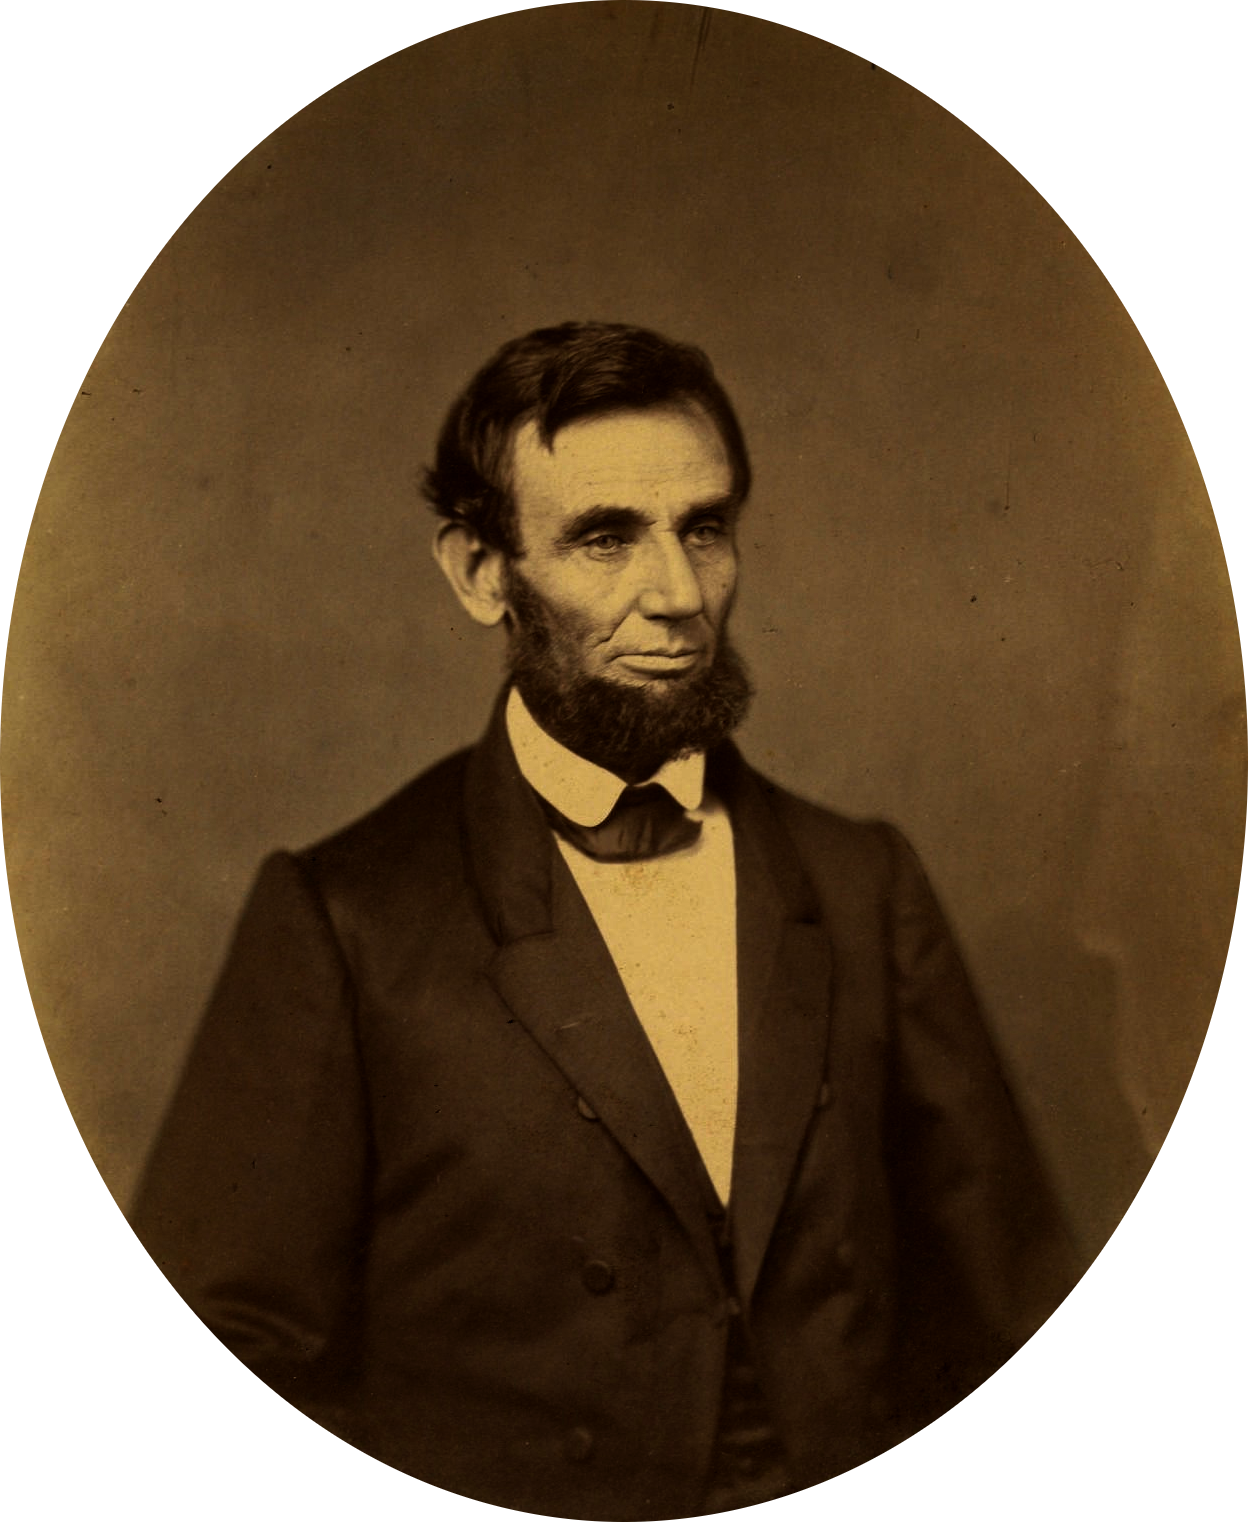 abraham lincoln dbq 5 paragraph abraham lincoln essaypdf free download here the death of abraham lincoln dbq dave klippel, discovery academy.